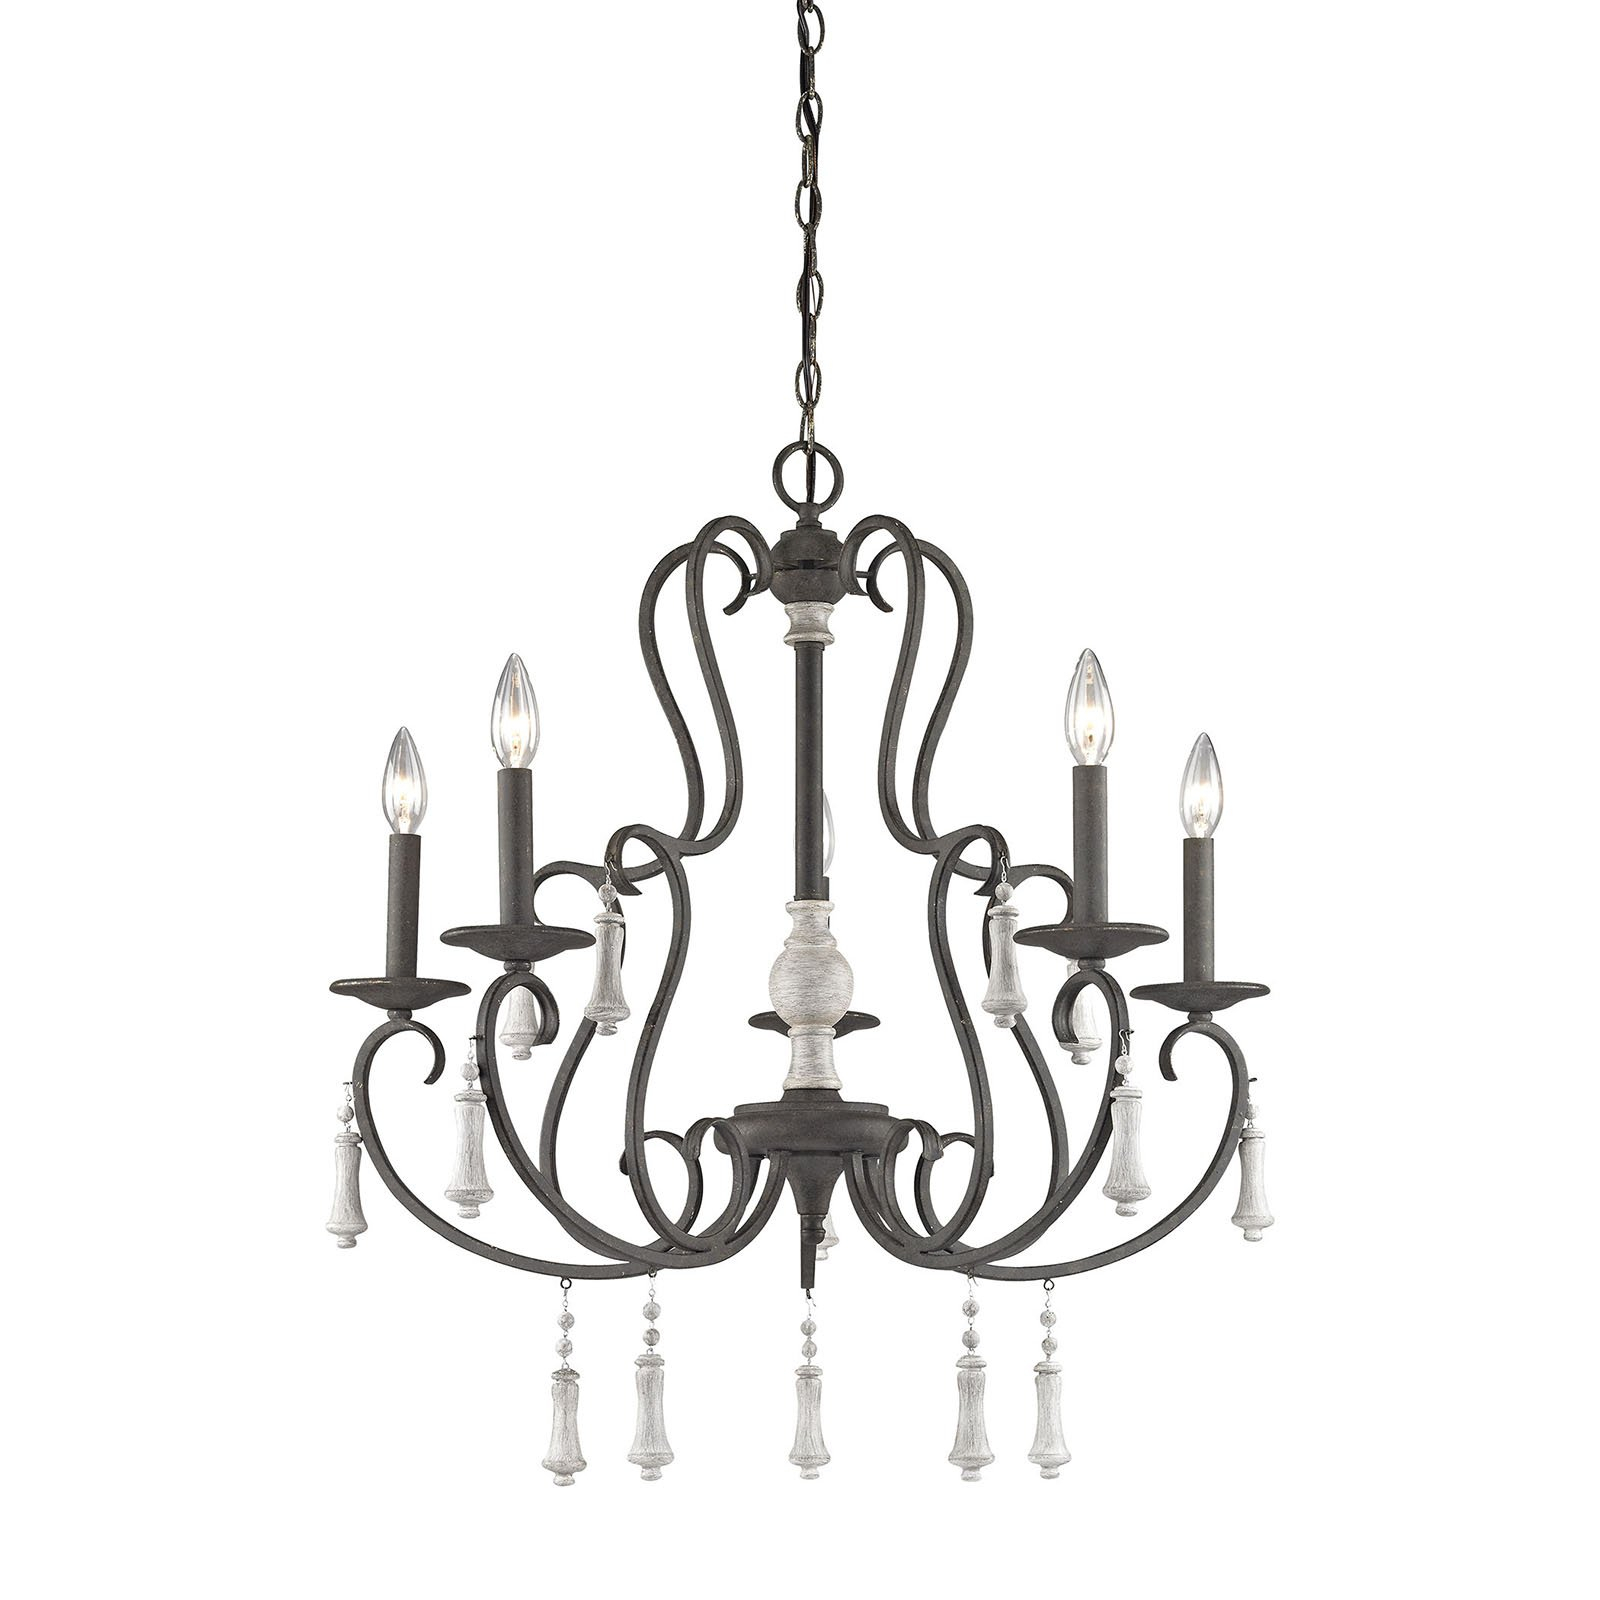 Elk Lighting Porto Cristo 52022/5 5 Light Chandelier In 2019 Throughout Florentina 5 Light Candle Style Chandeliers (Gallery 11 of 30)